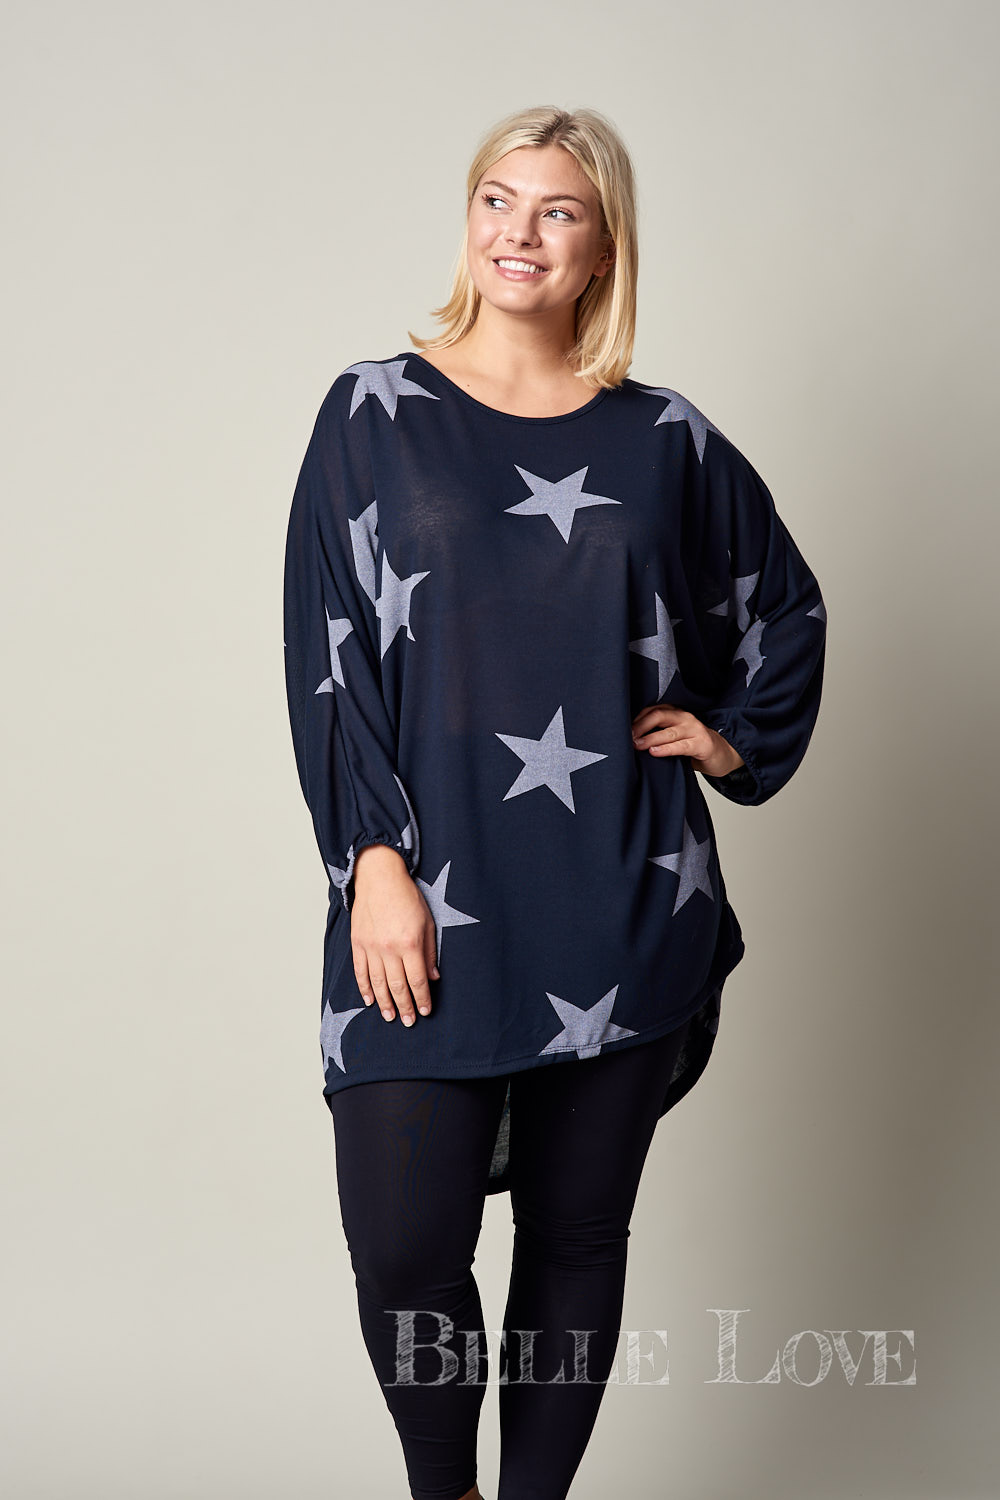 Belle Love Italy Statement Star Casual Tunic